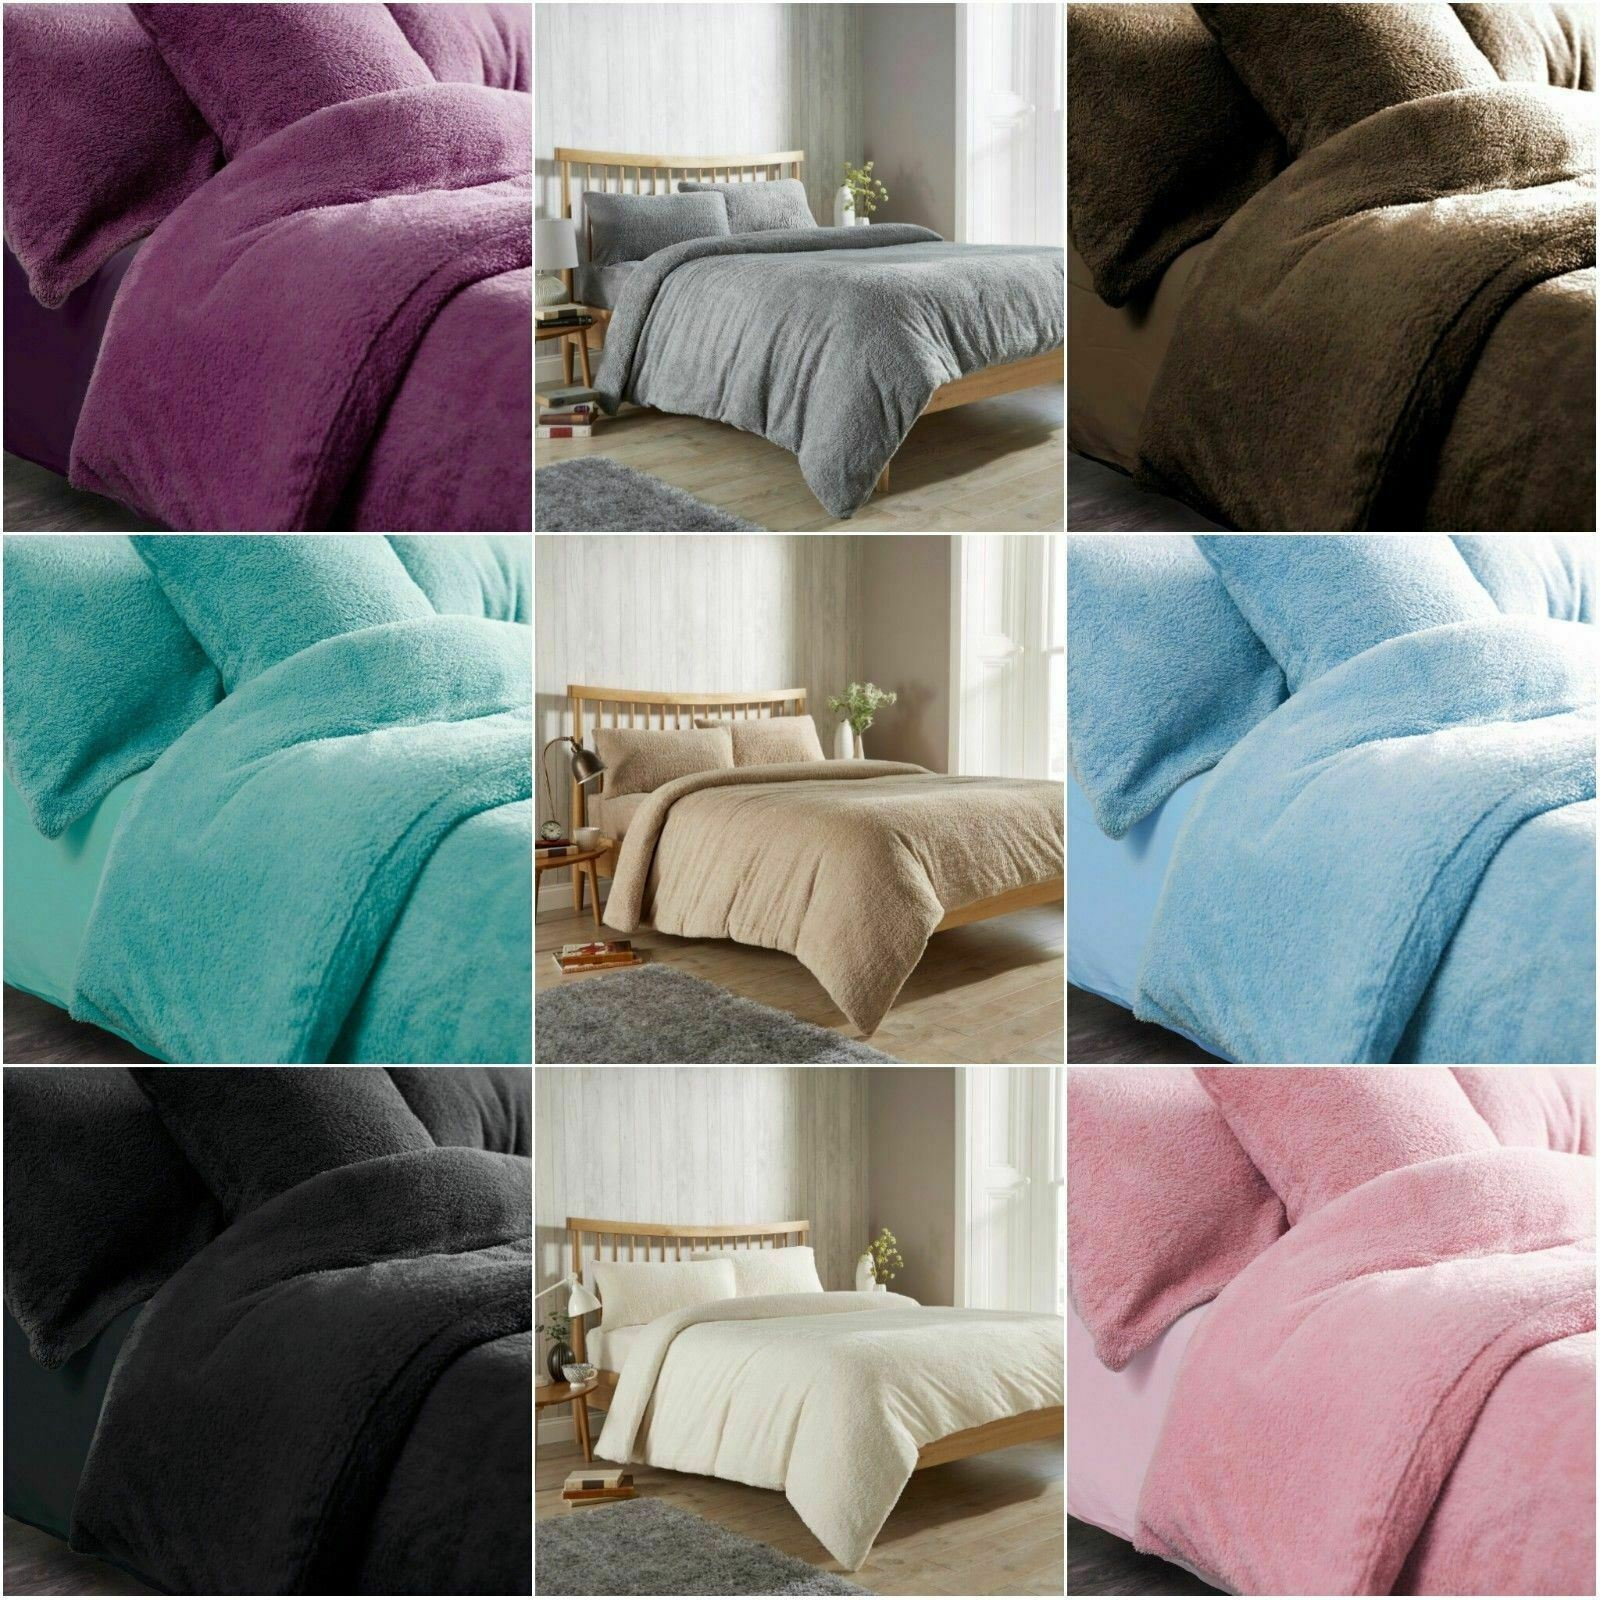 Double Teddy Fleece Duvet Cover Set with Pillow Case Thermal Warm Bedding Set